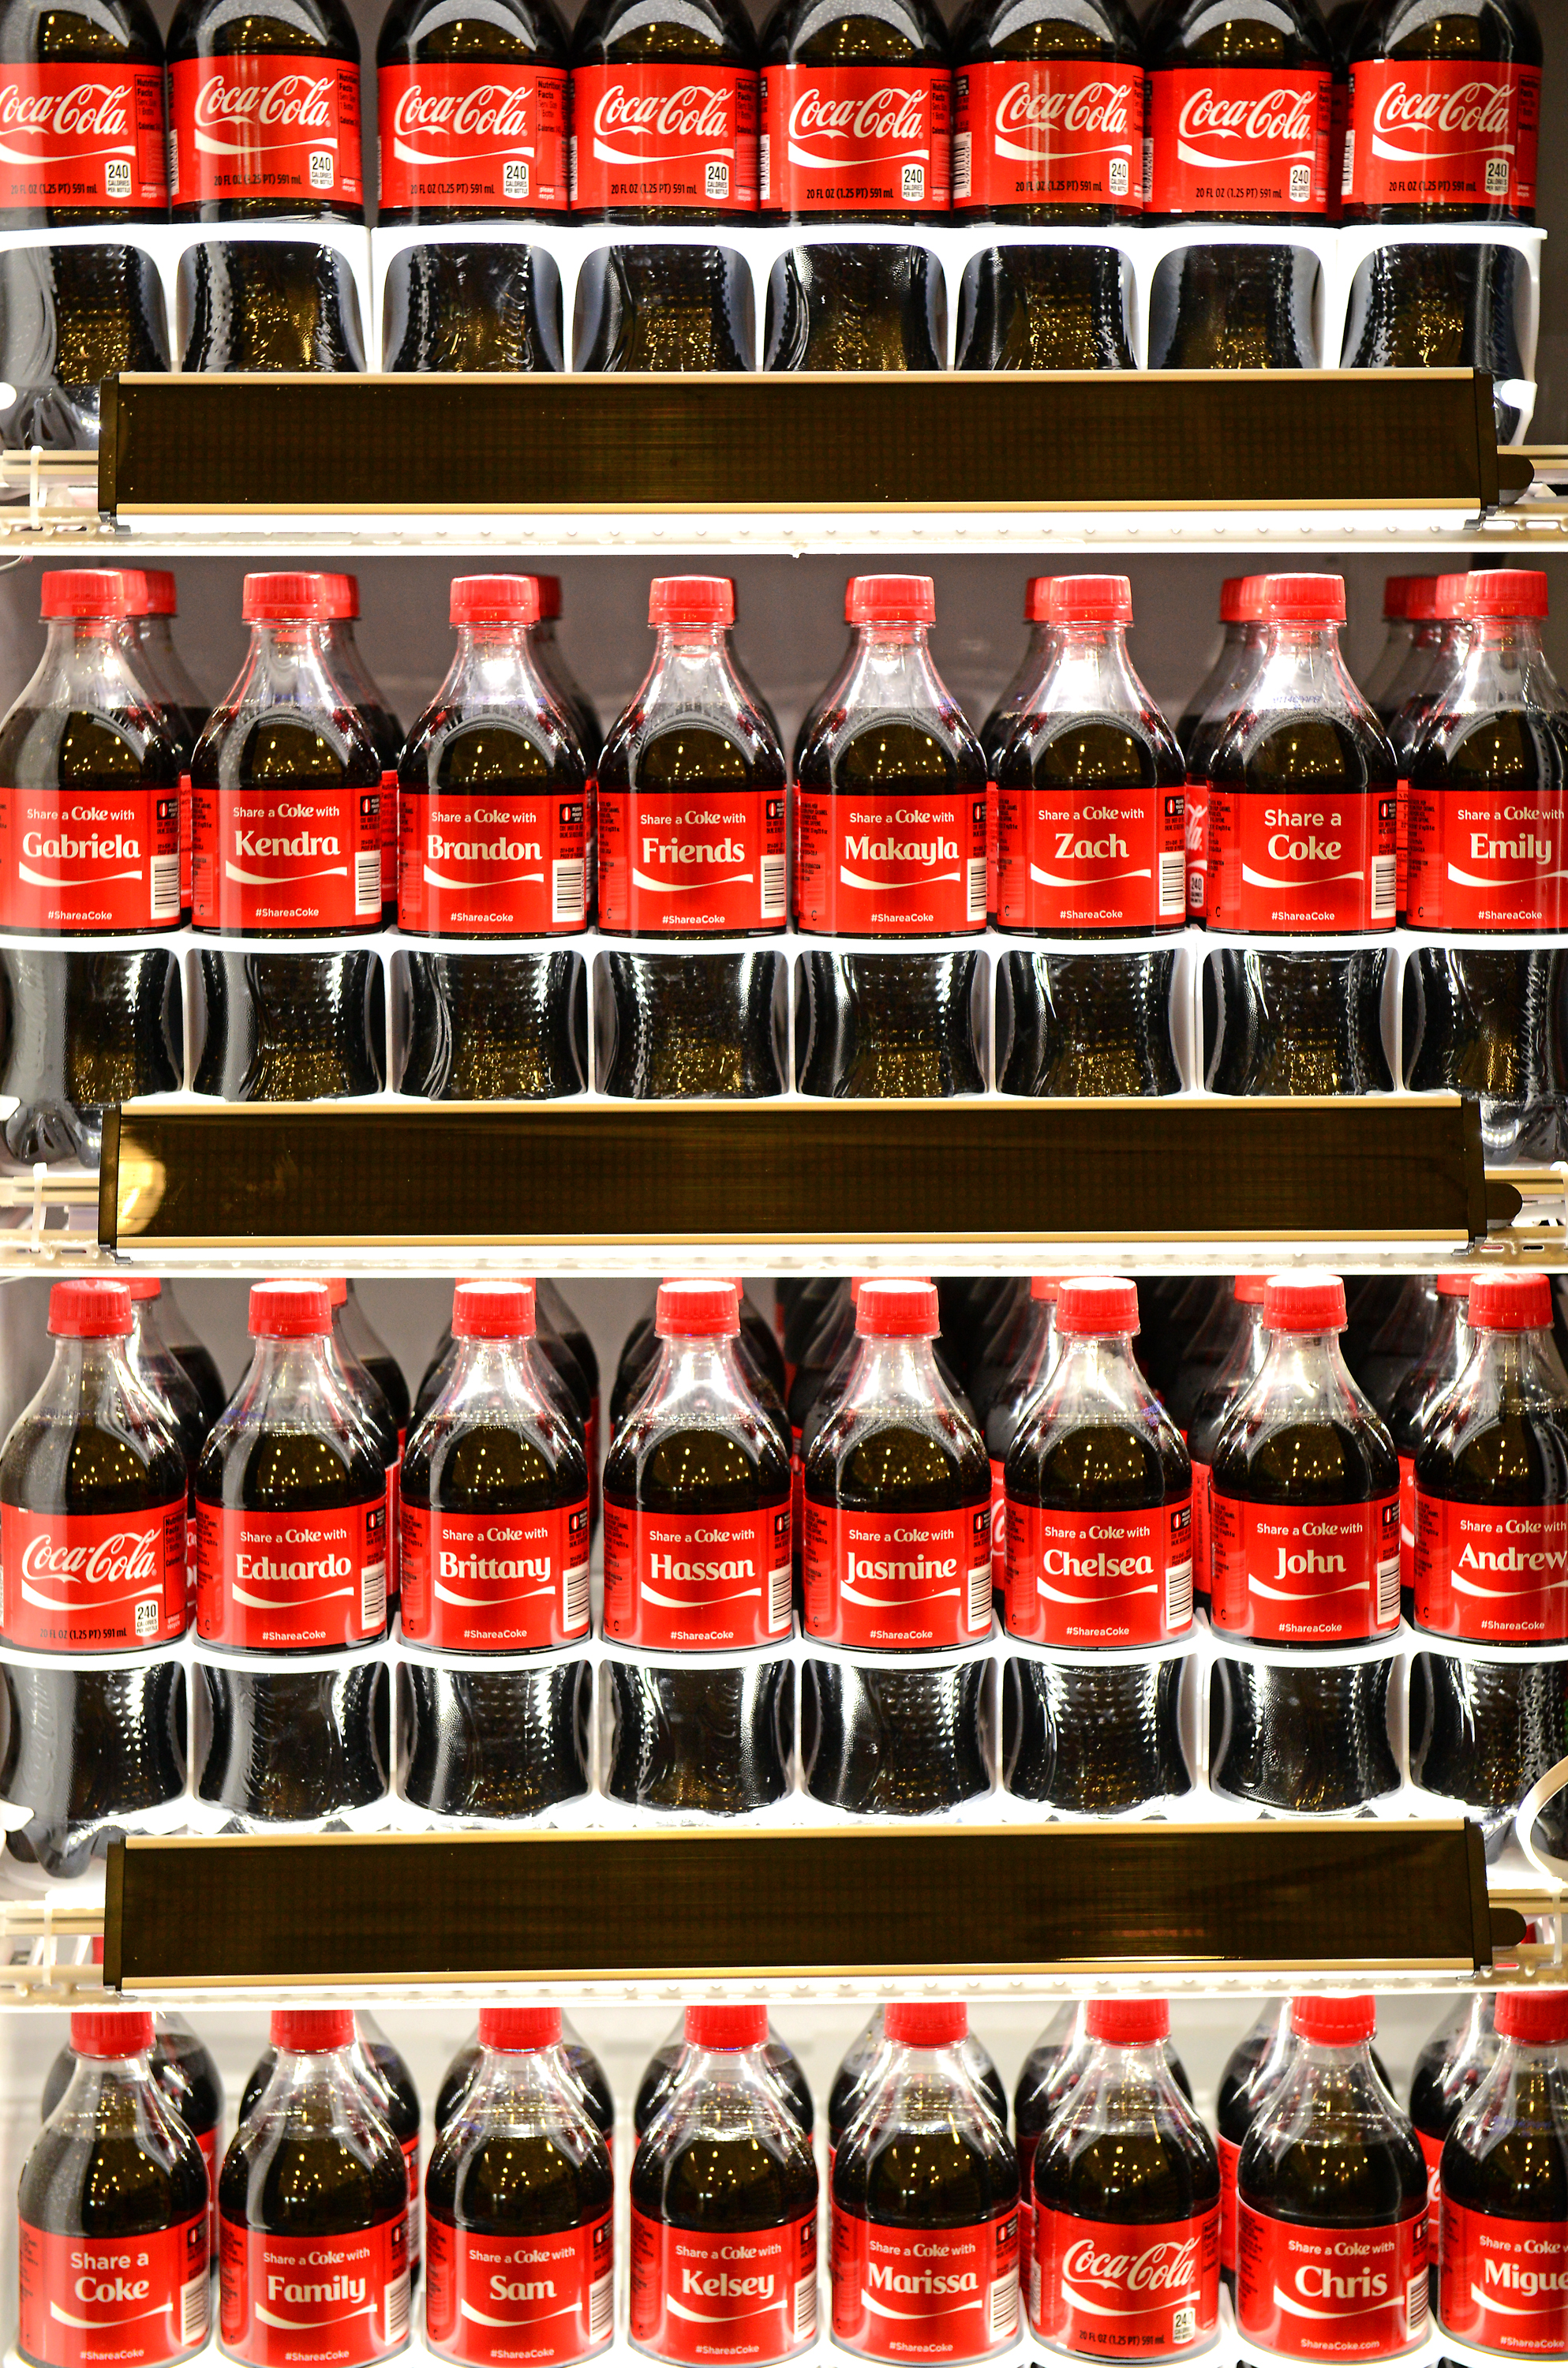 Coca-Cola Celebrates A Summer Of Sharing